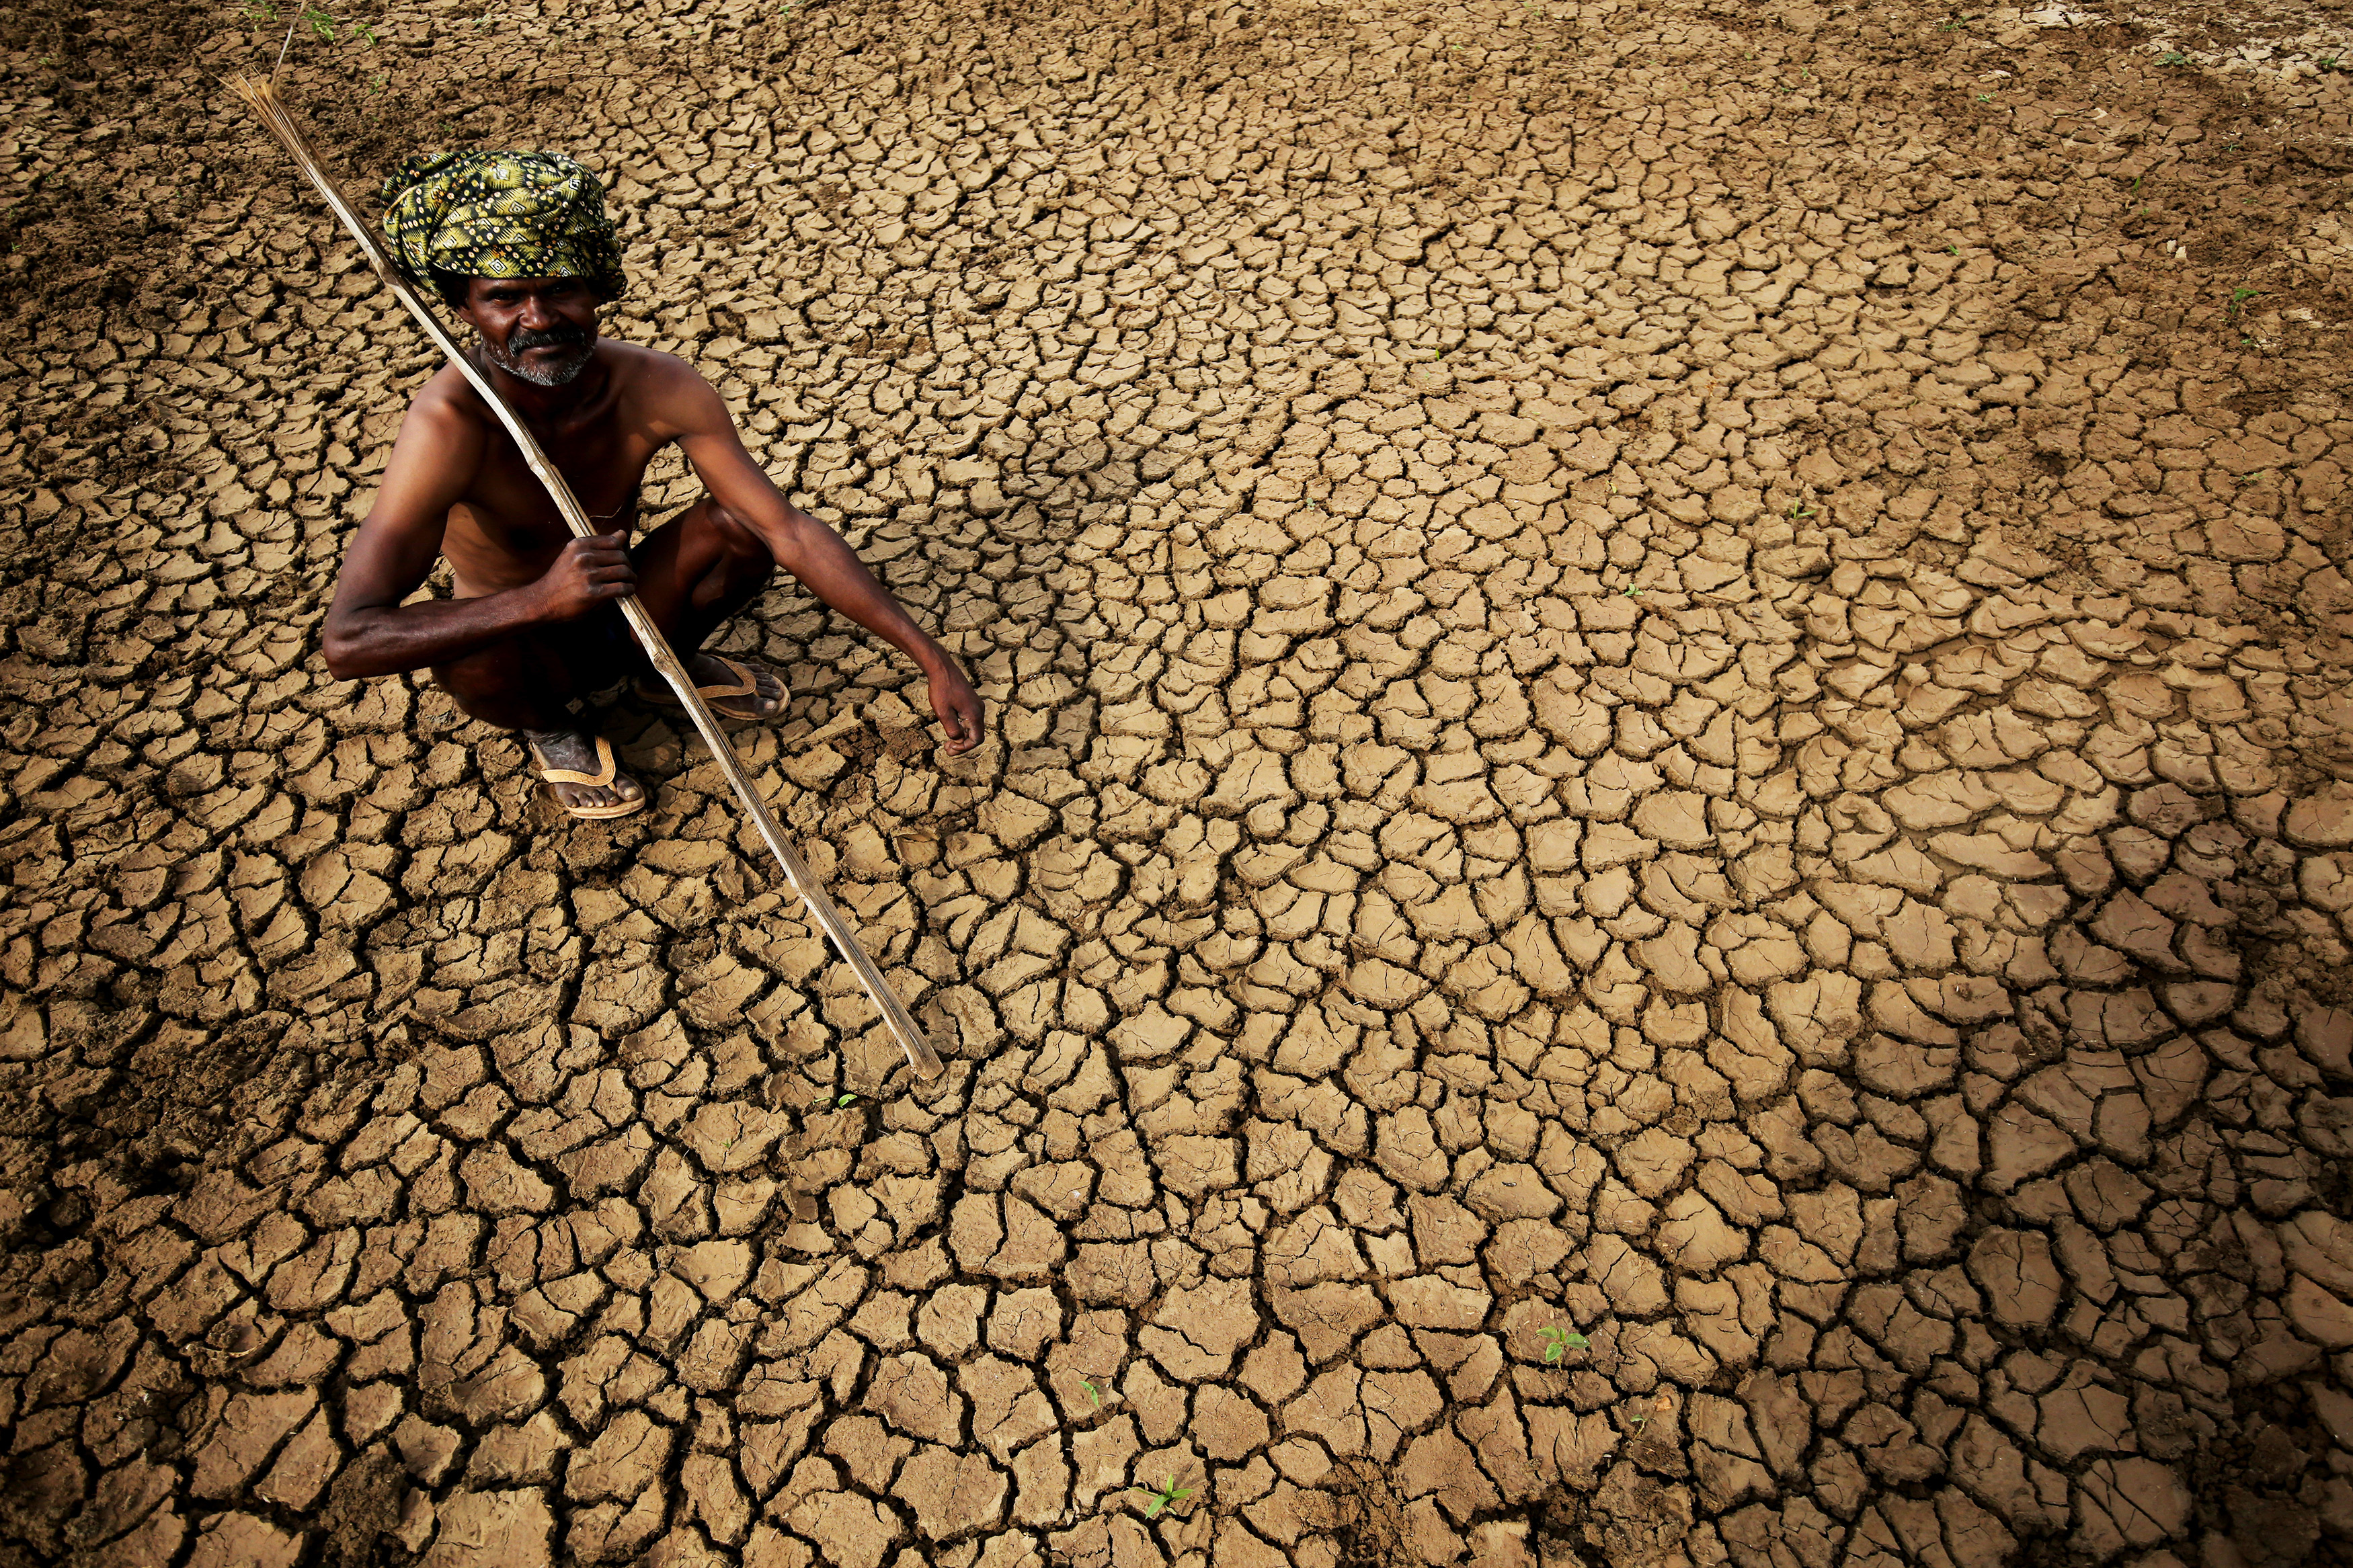 An Indian farmer sits in his dried-up land in Gauribidanur village, near Bangalore, India, on May 26, 2015